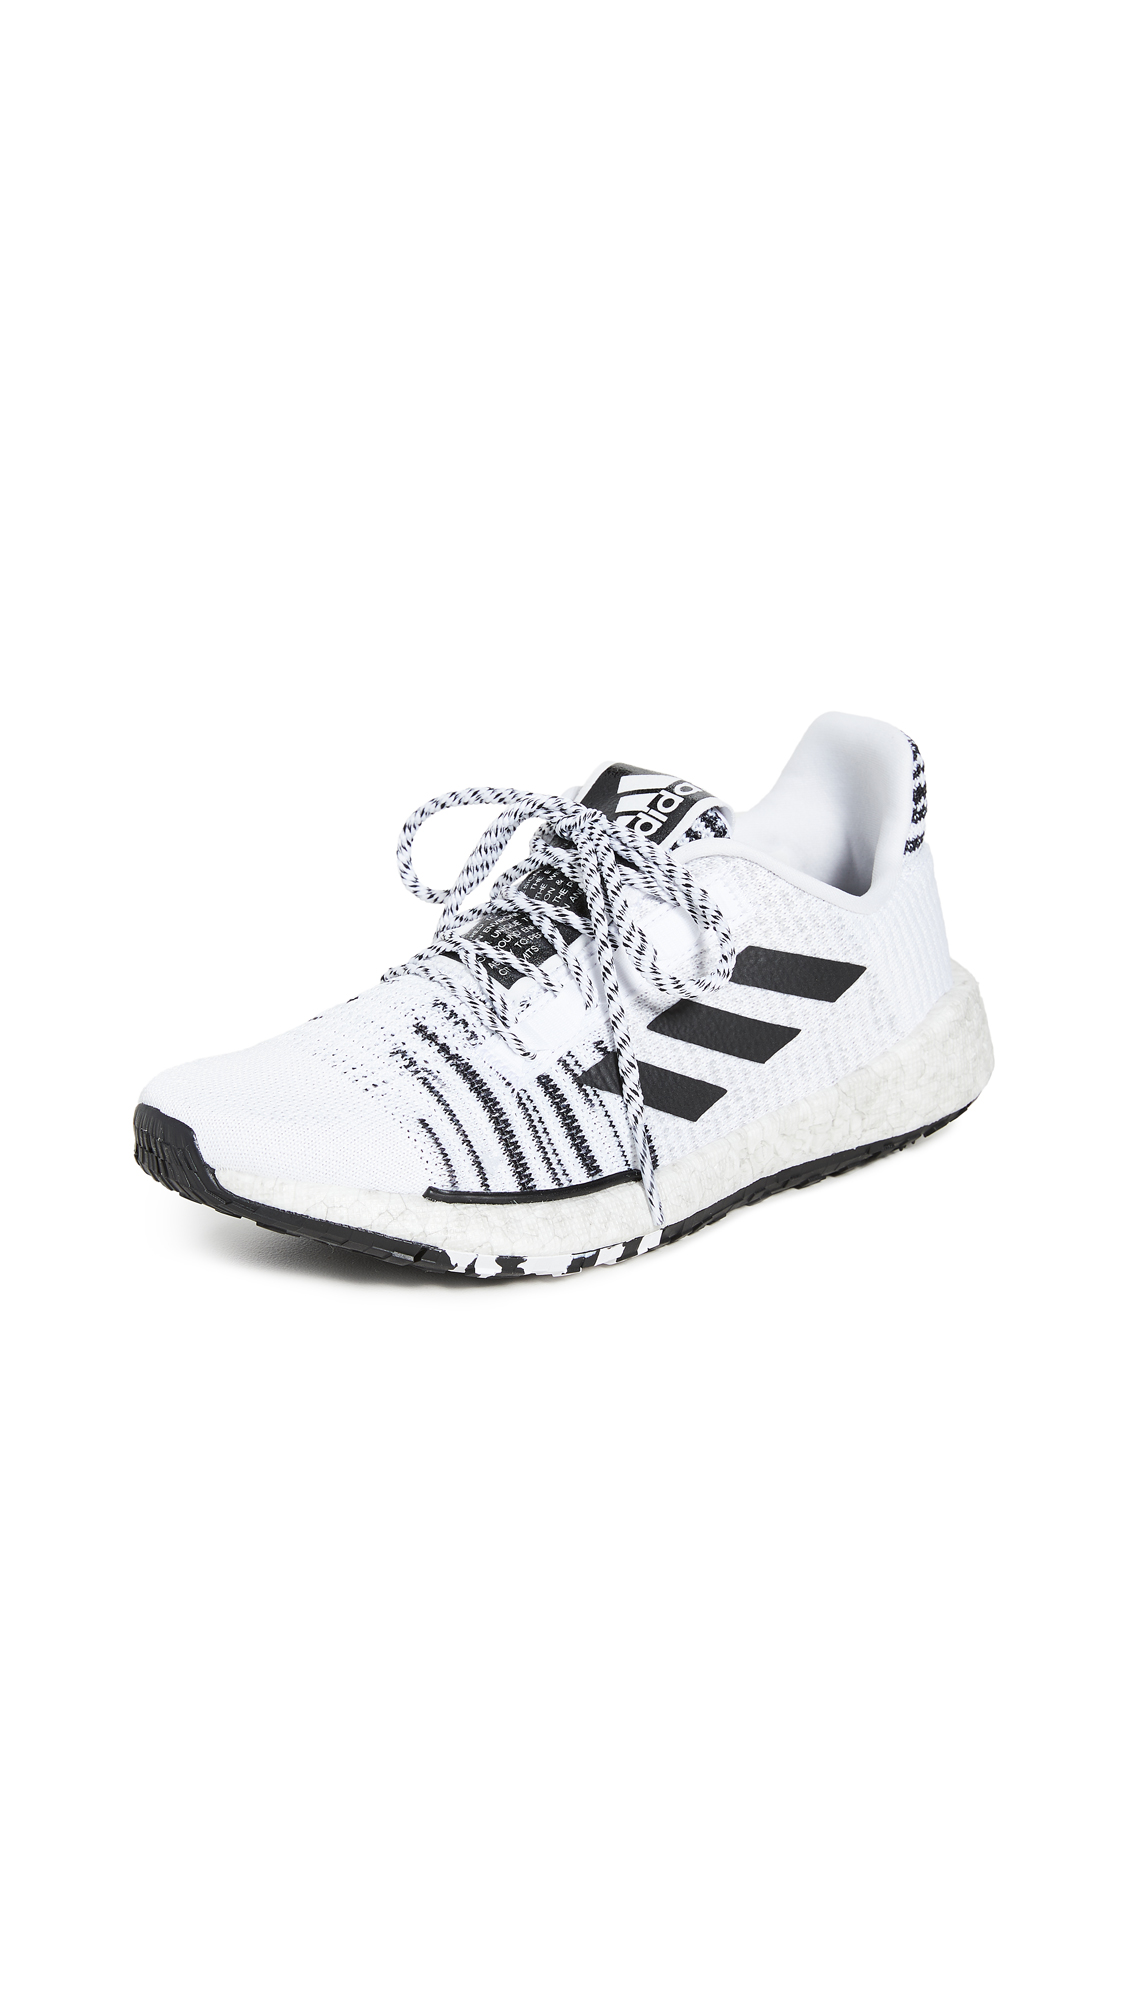 Buy adidas Pulseboost HD x MISSONI Sneakers online, shop adidas